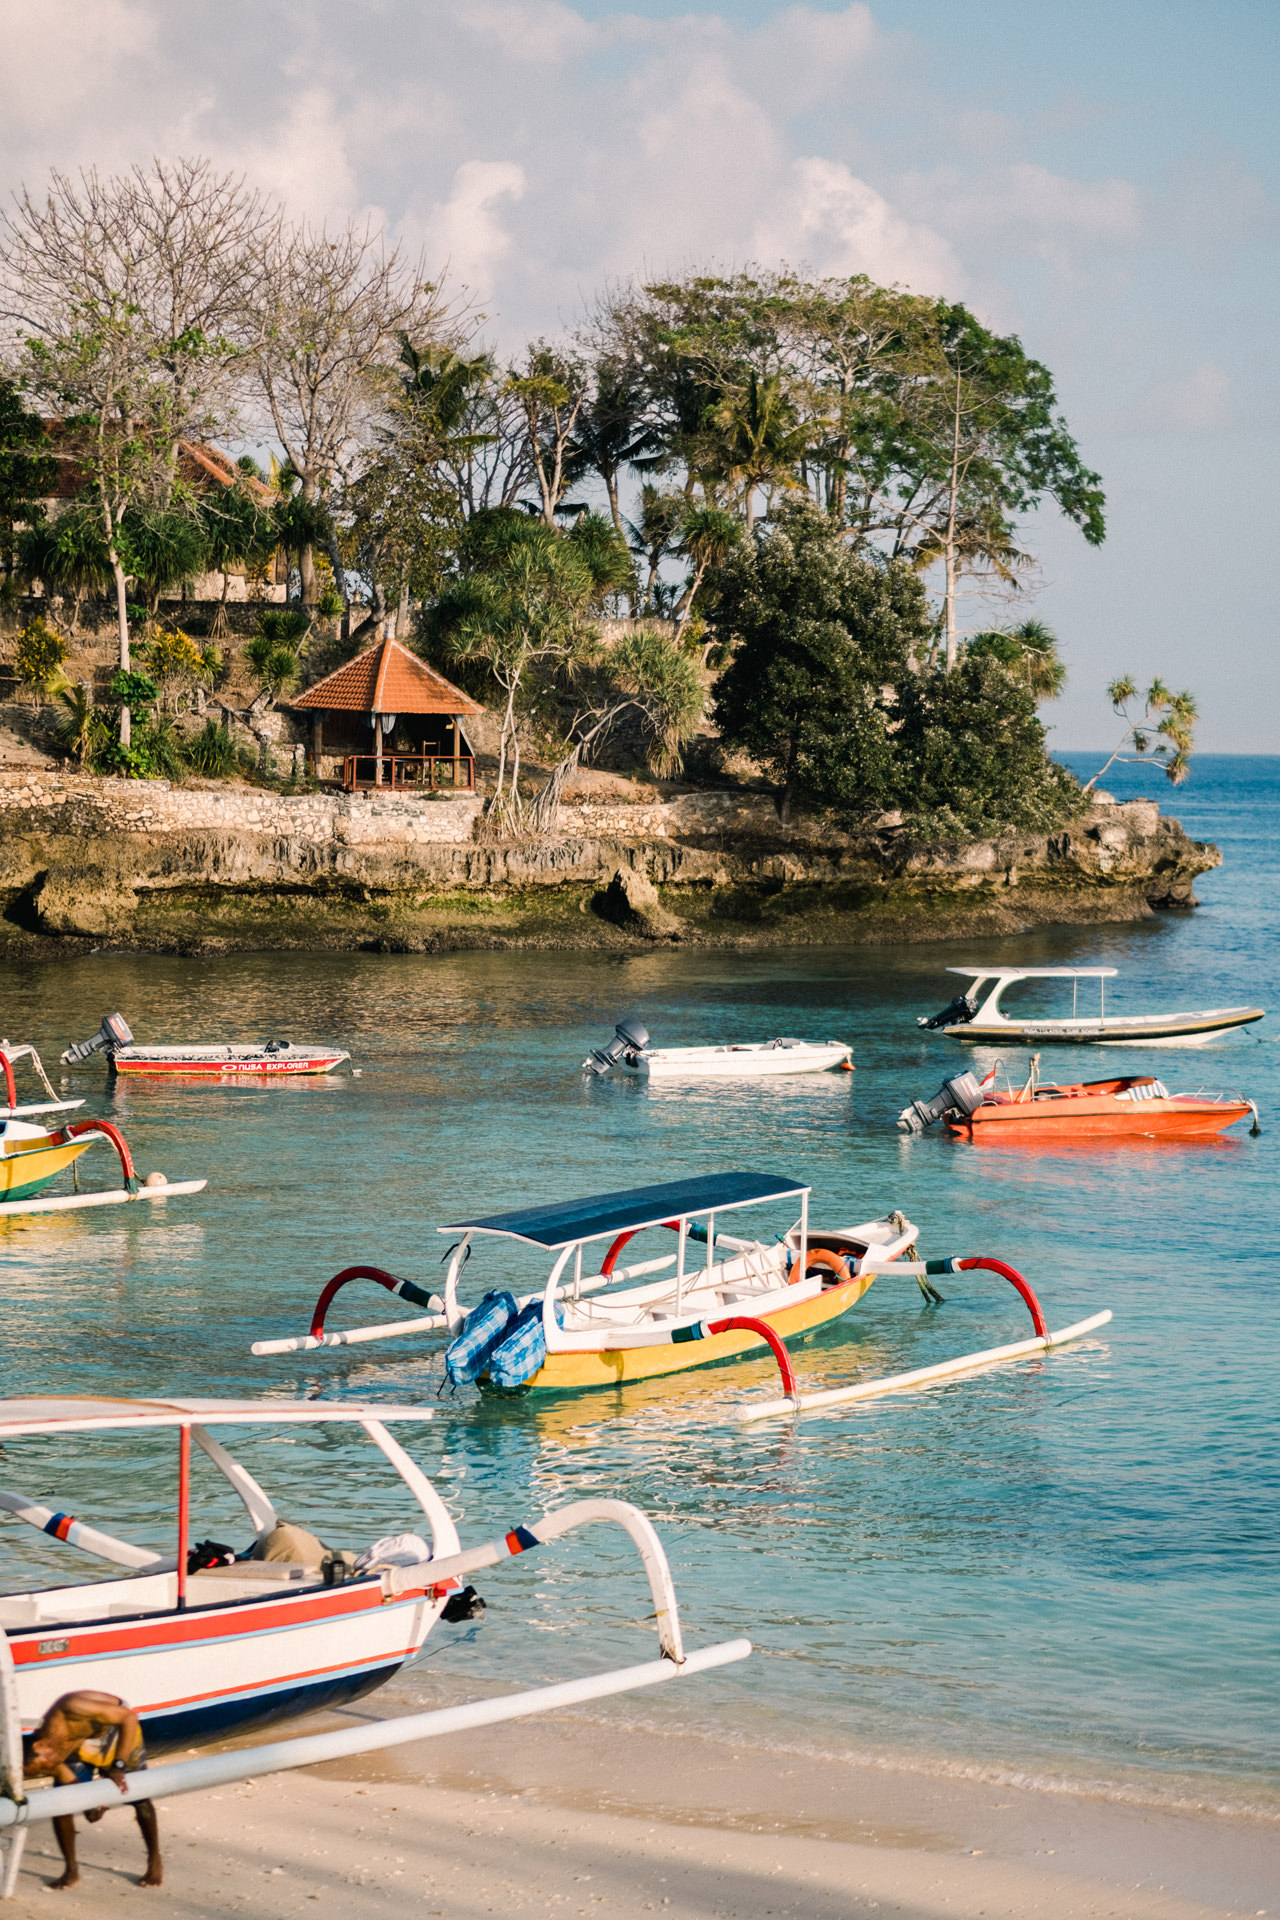 H&P: Lembongan Island Bali Wedding Destination 2